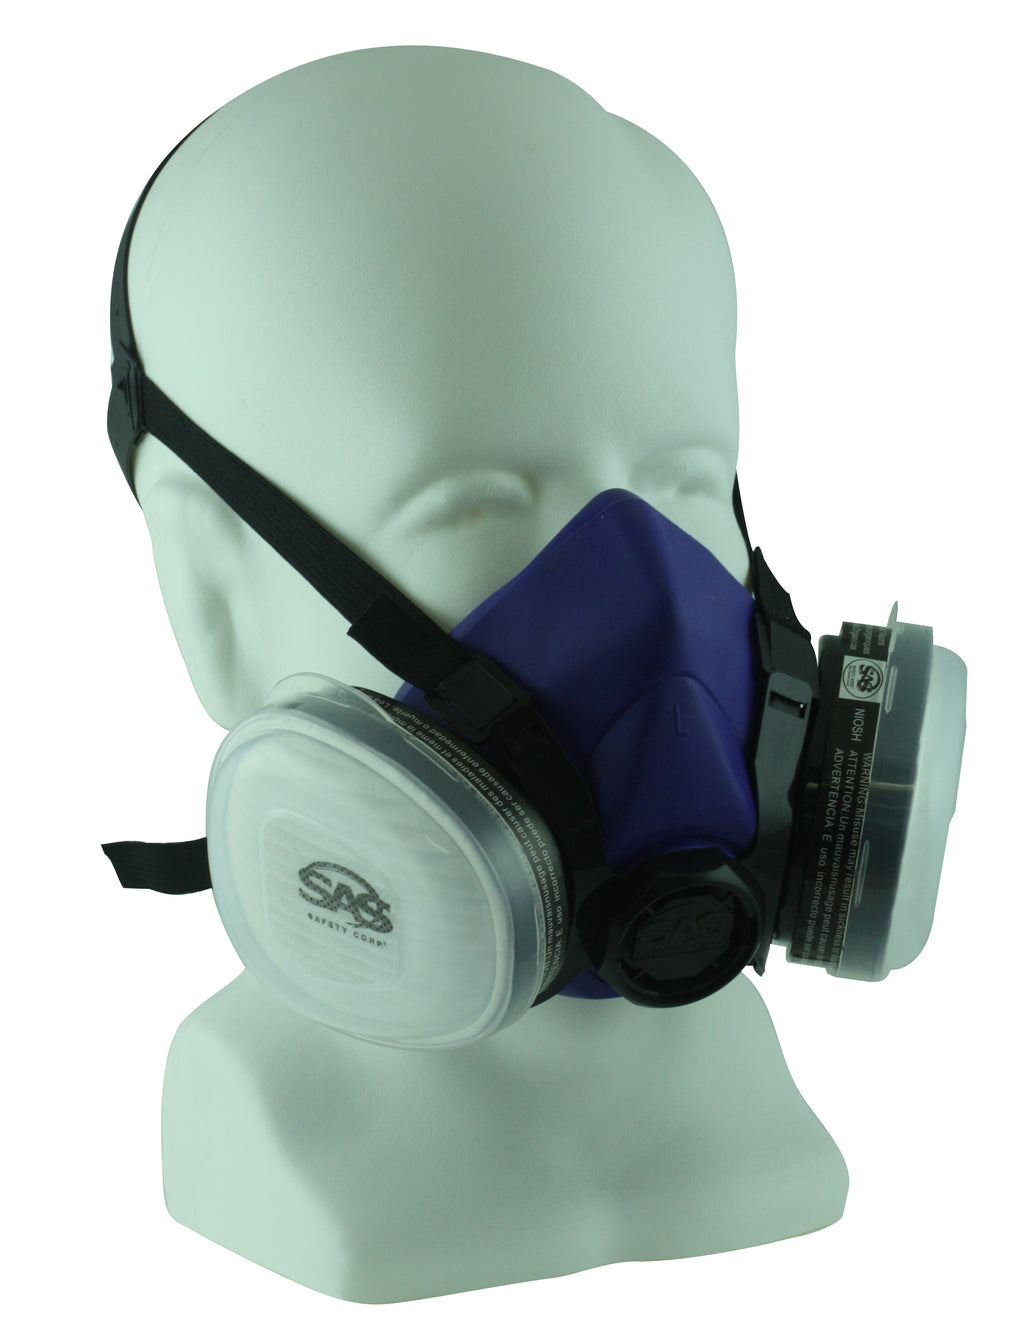 'Bandit' Assembled Half Mask Respirators